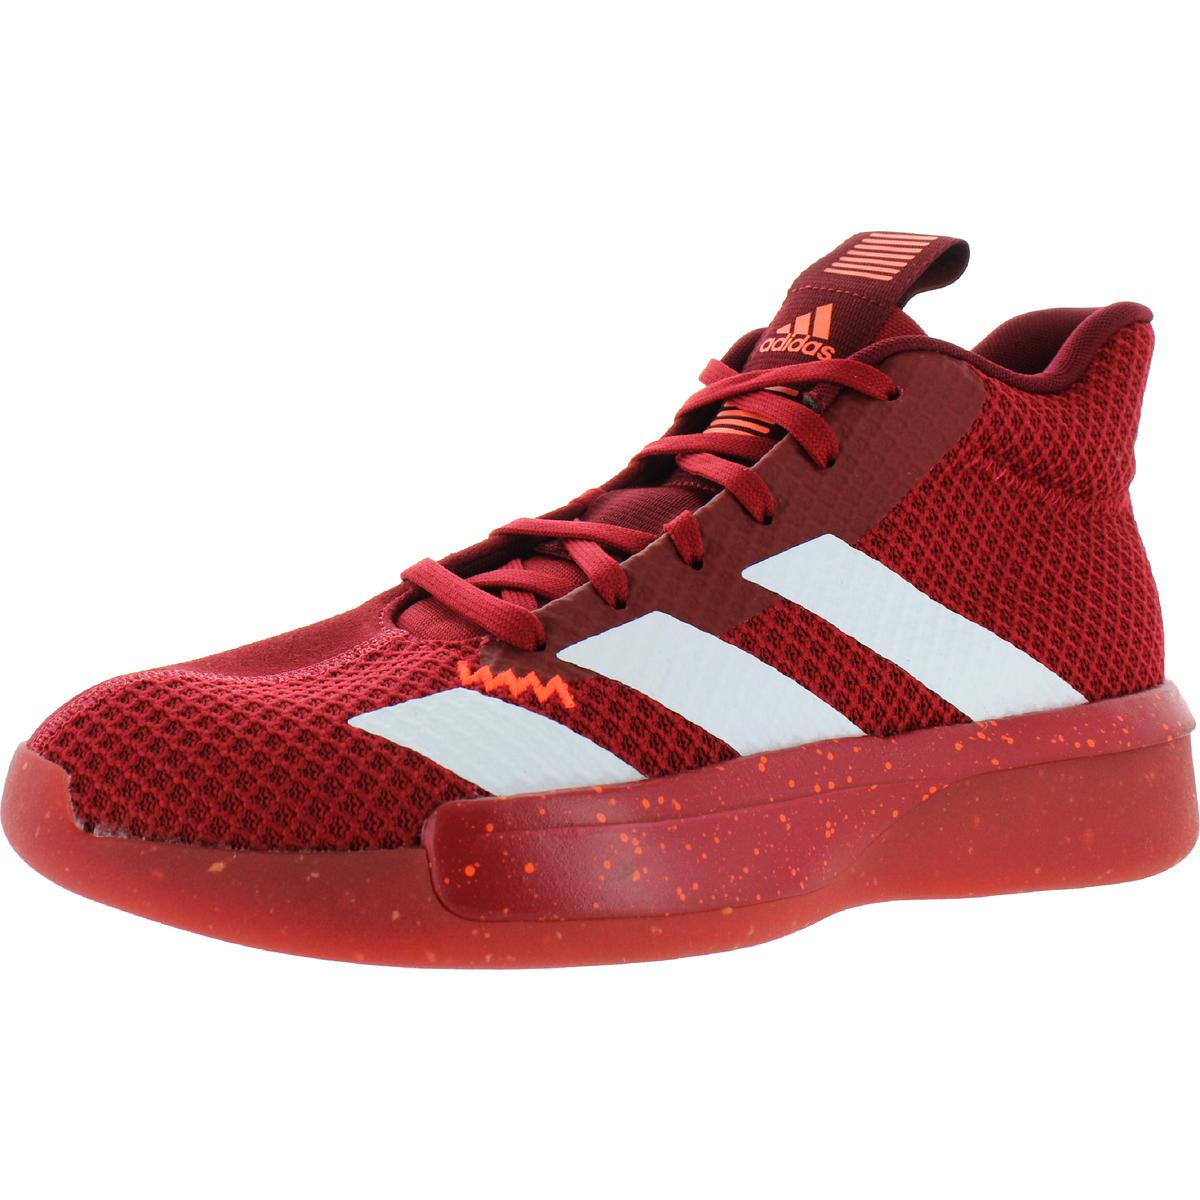 Details about Adidas Mens Pro Next 2019 Suede Knit Basketball Shoes  Sneakers BHFO 6634